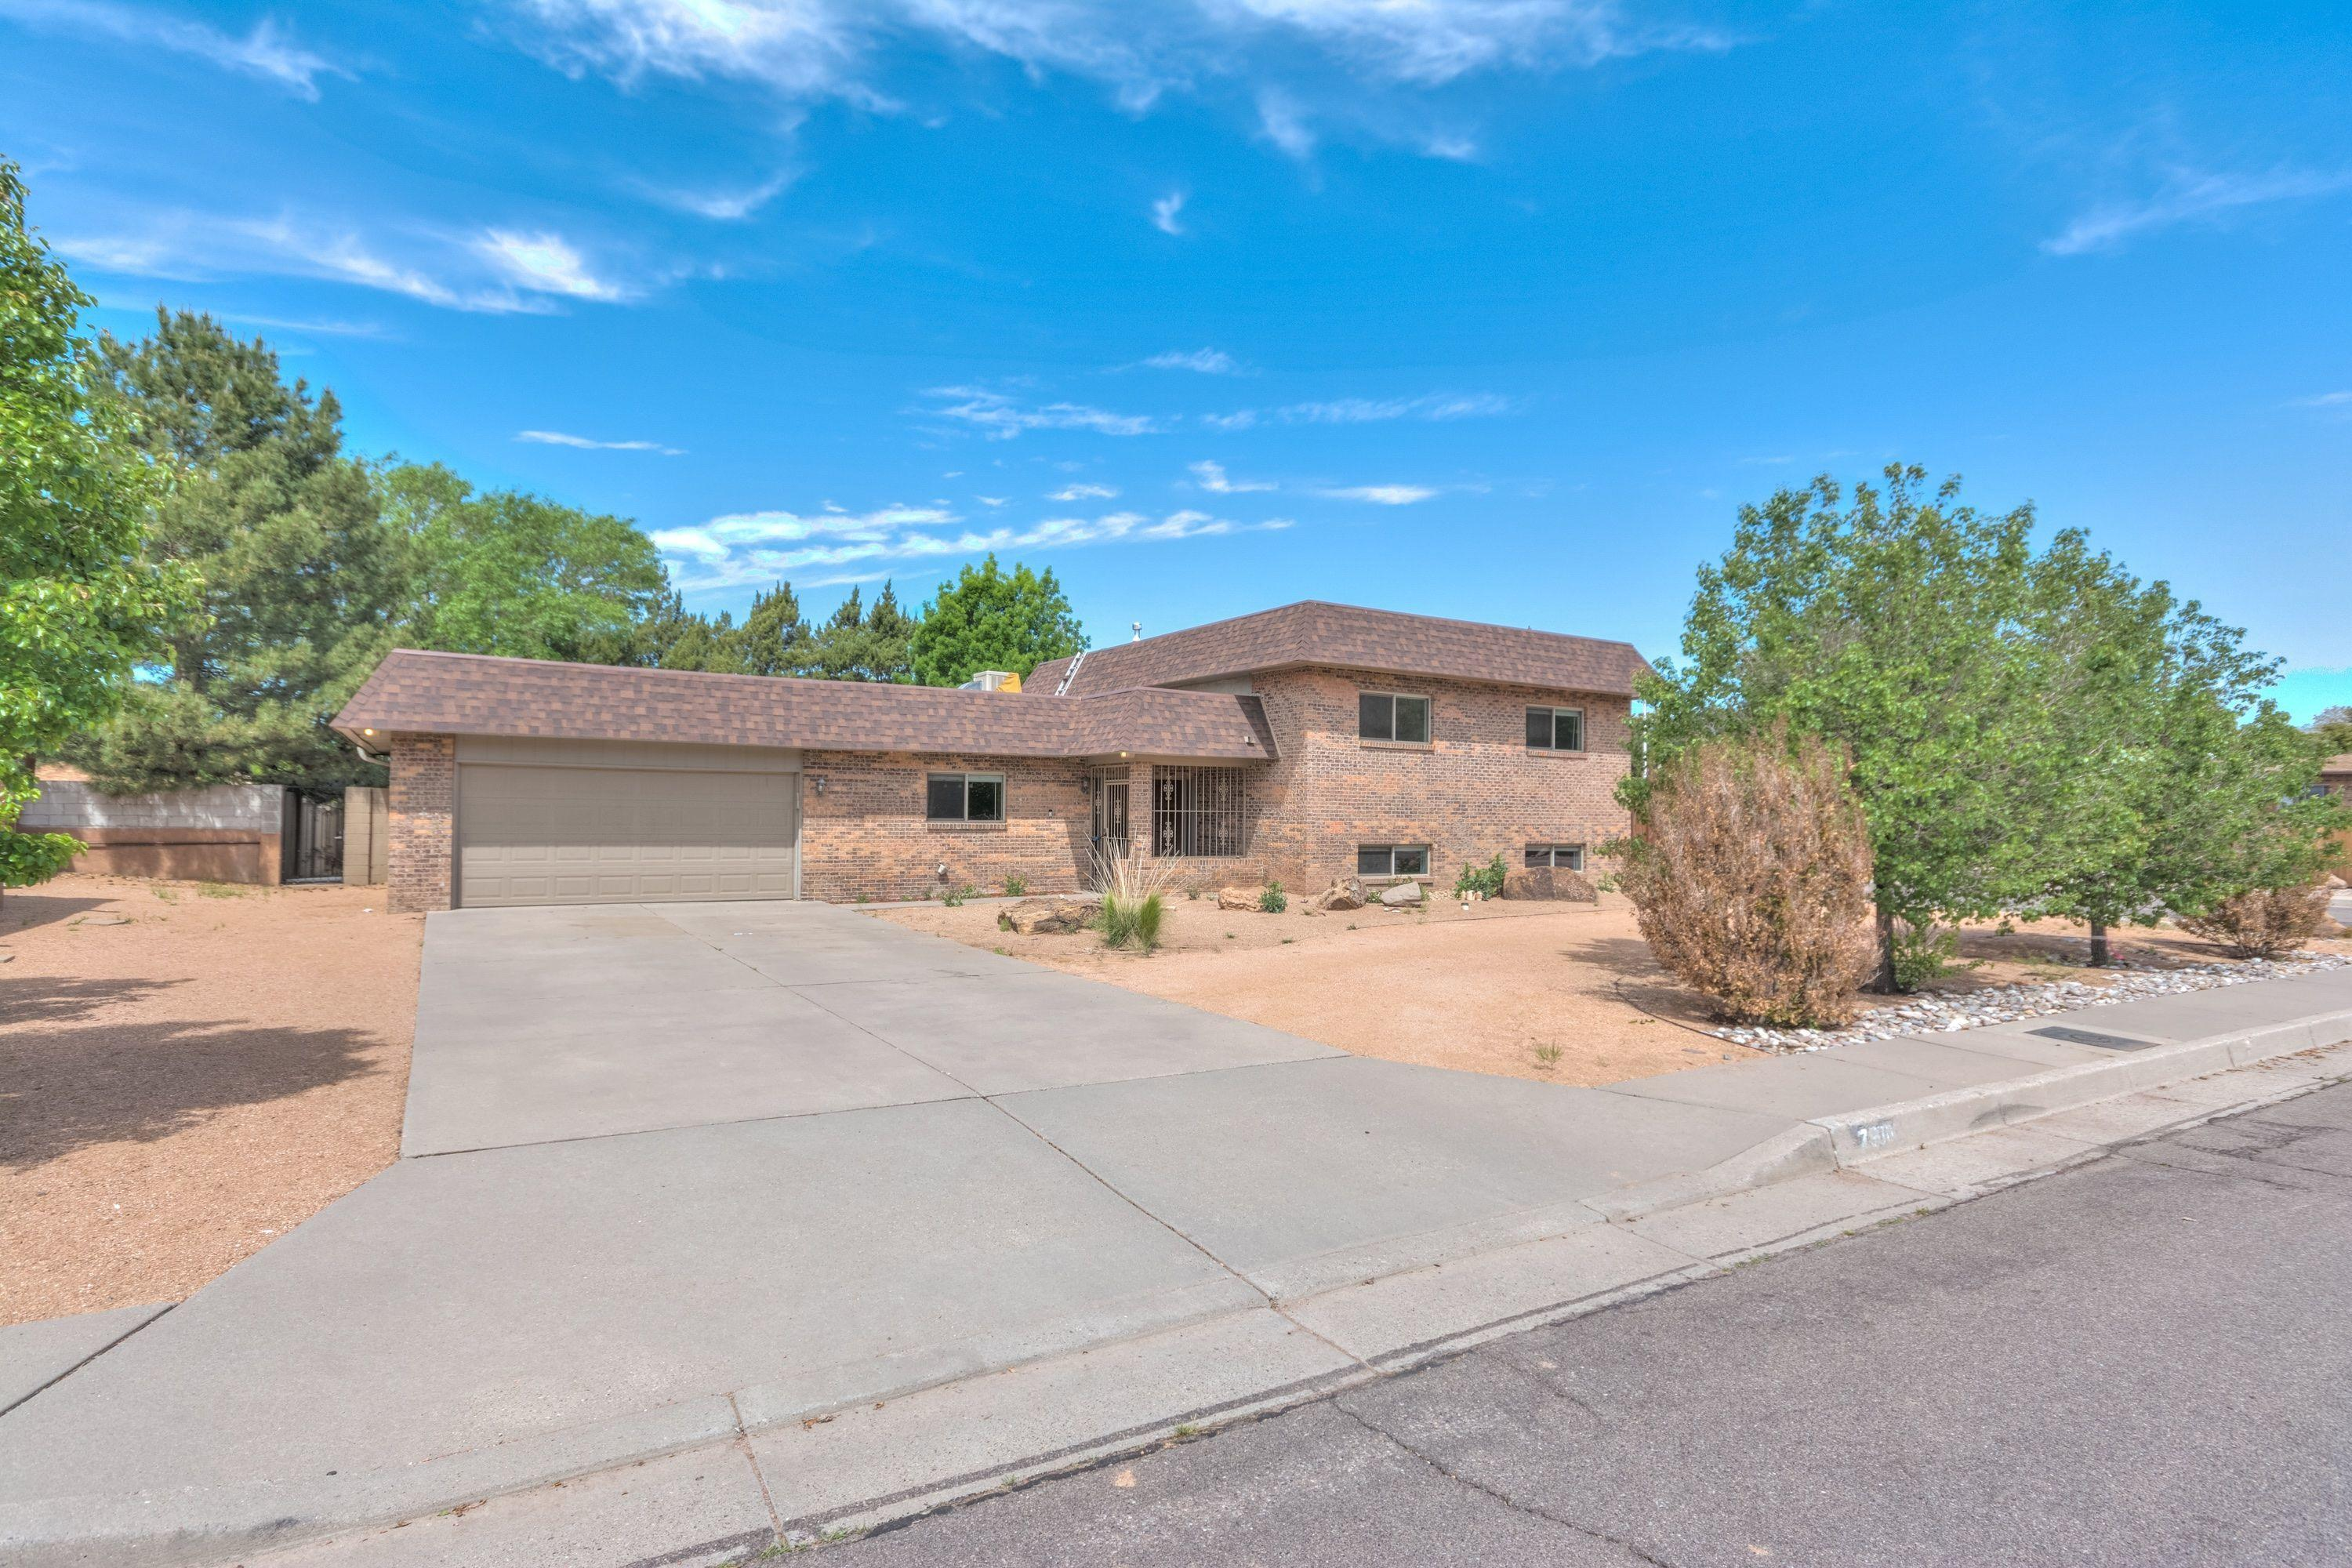 This beautiful property is in the esteemed Northridge subdivision of NE ABQ. Located on a large corner lot in a Cul-de-Sac, this split-level home is move in ready!  Boasting two living areas, one of which can be converted into another bedroom or guest room. Side yard access and back yard access is available for RV parking or other toys!  Close to Whole Foods and Starbucks. Come see it today, this home will not last long!